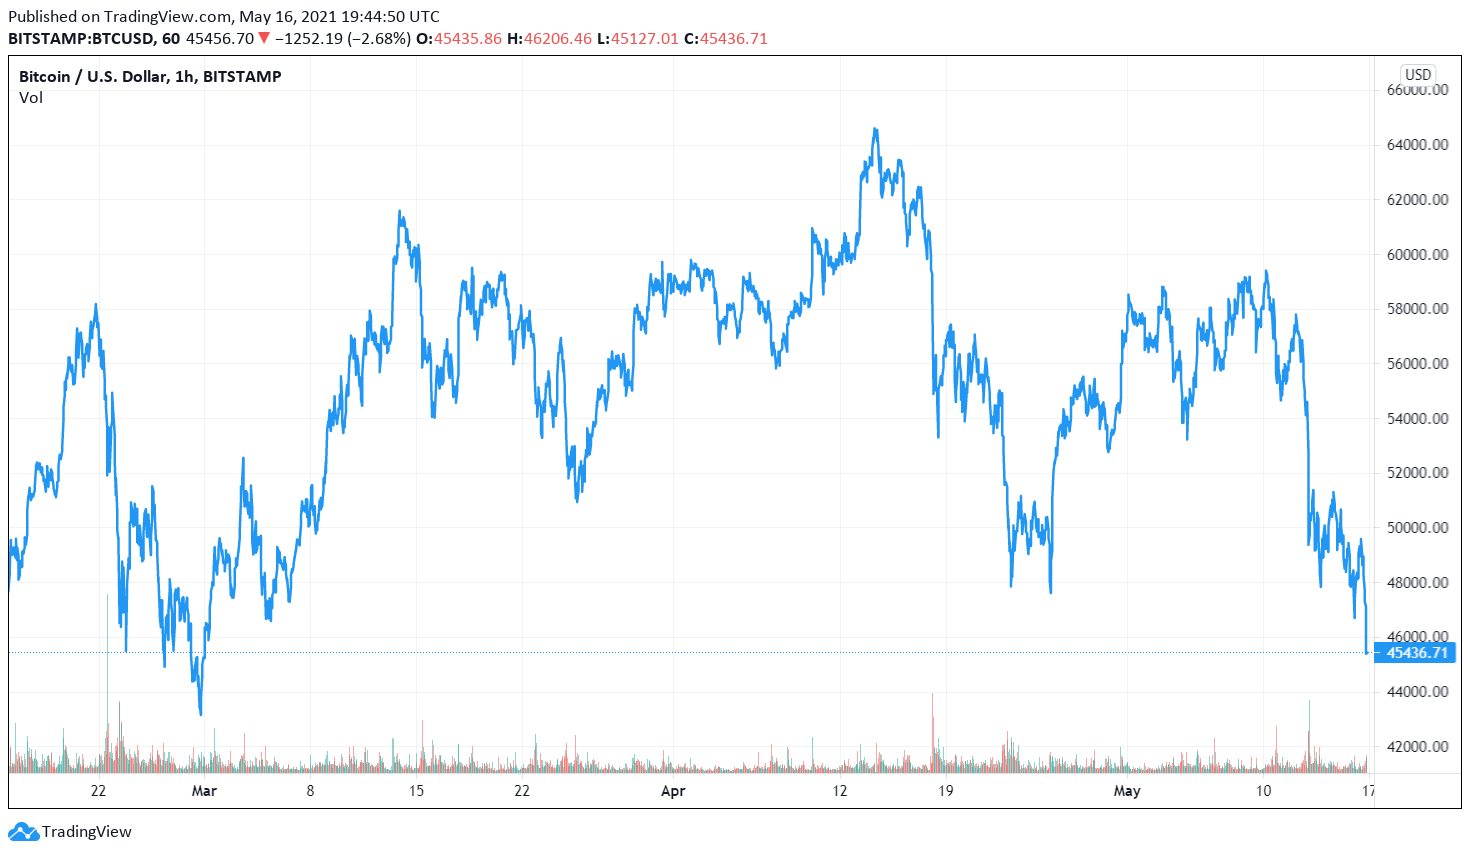 Bitcoin slips below K as correction deepens; institutions keep accumulating